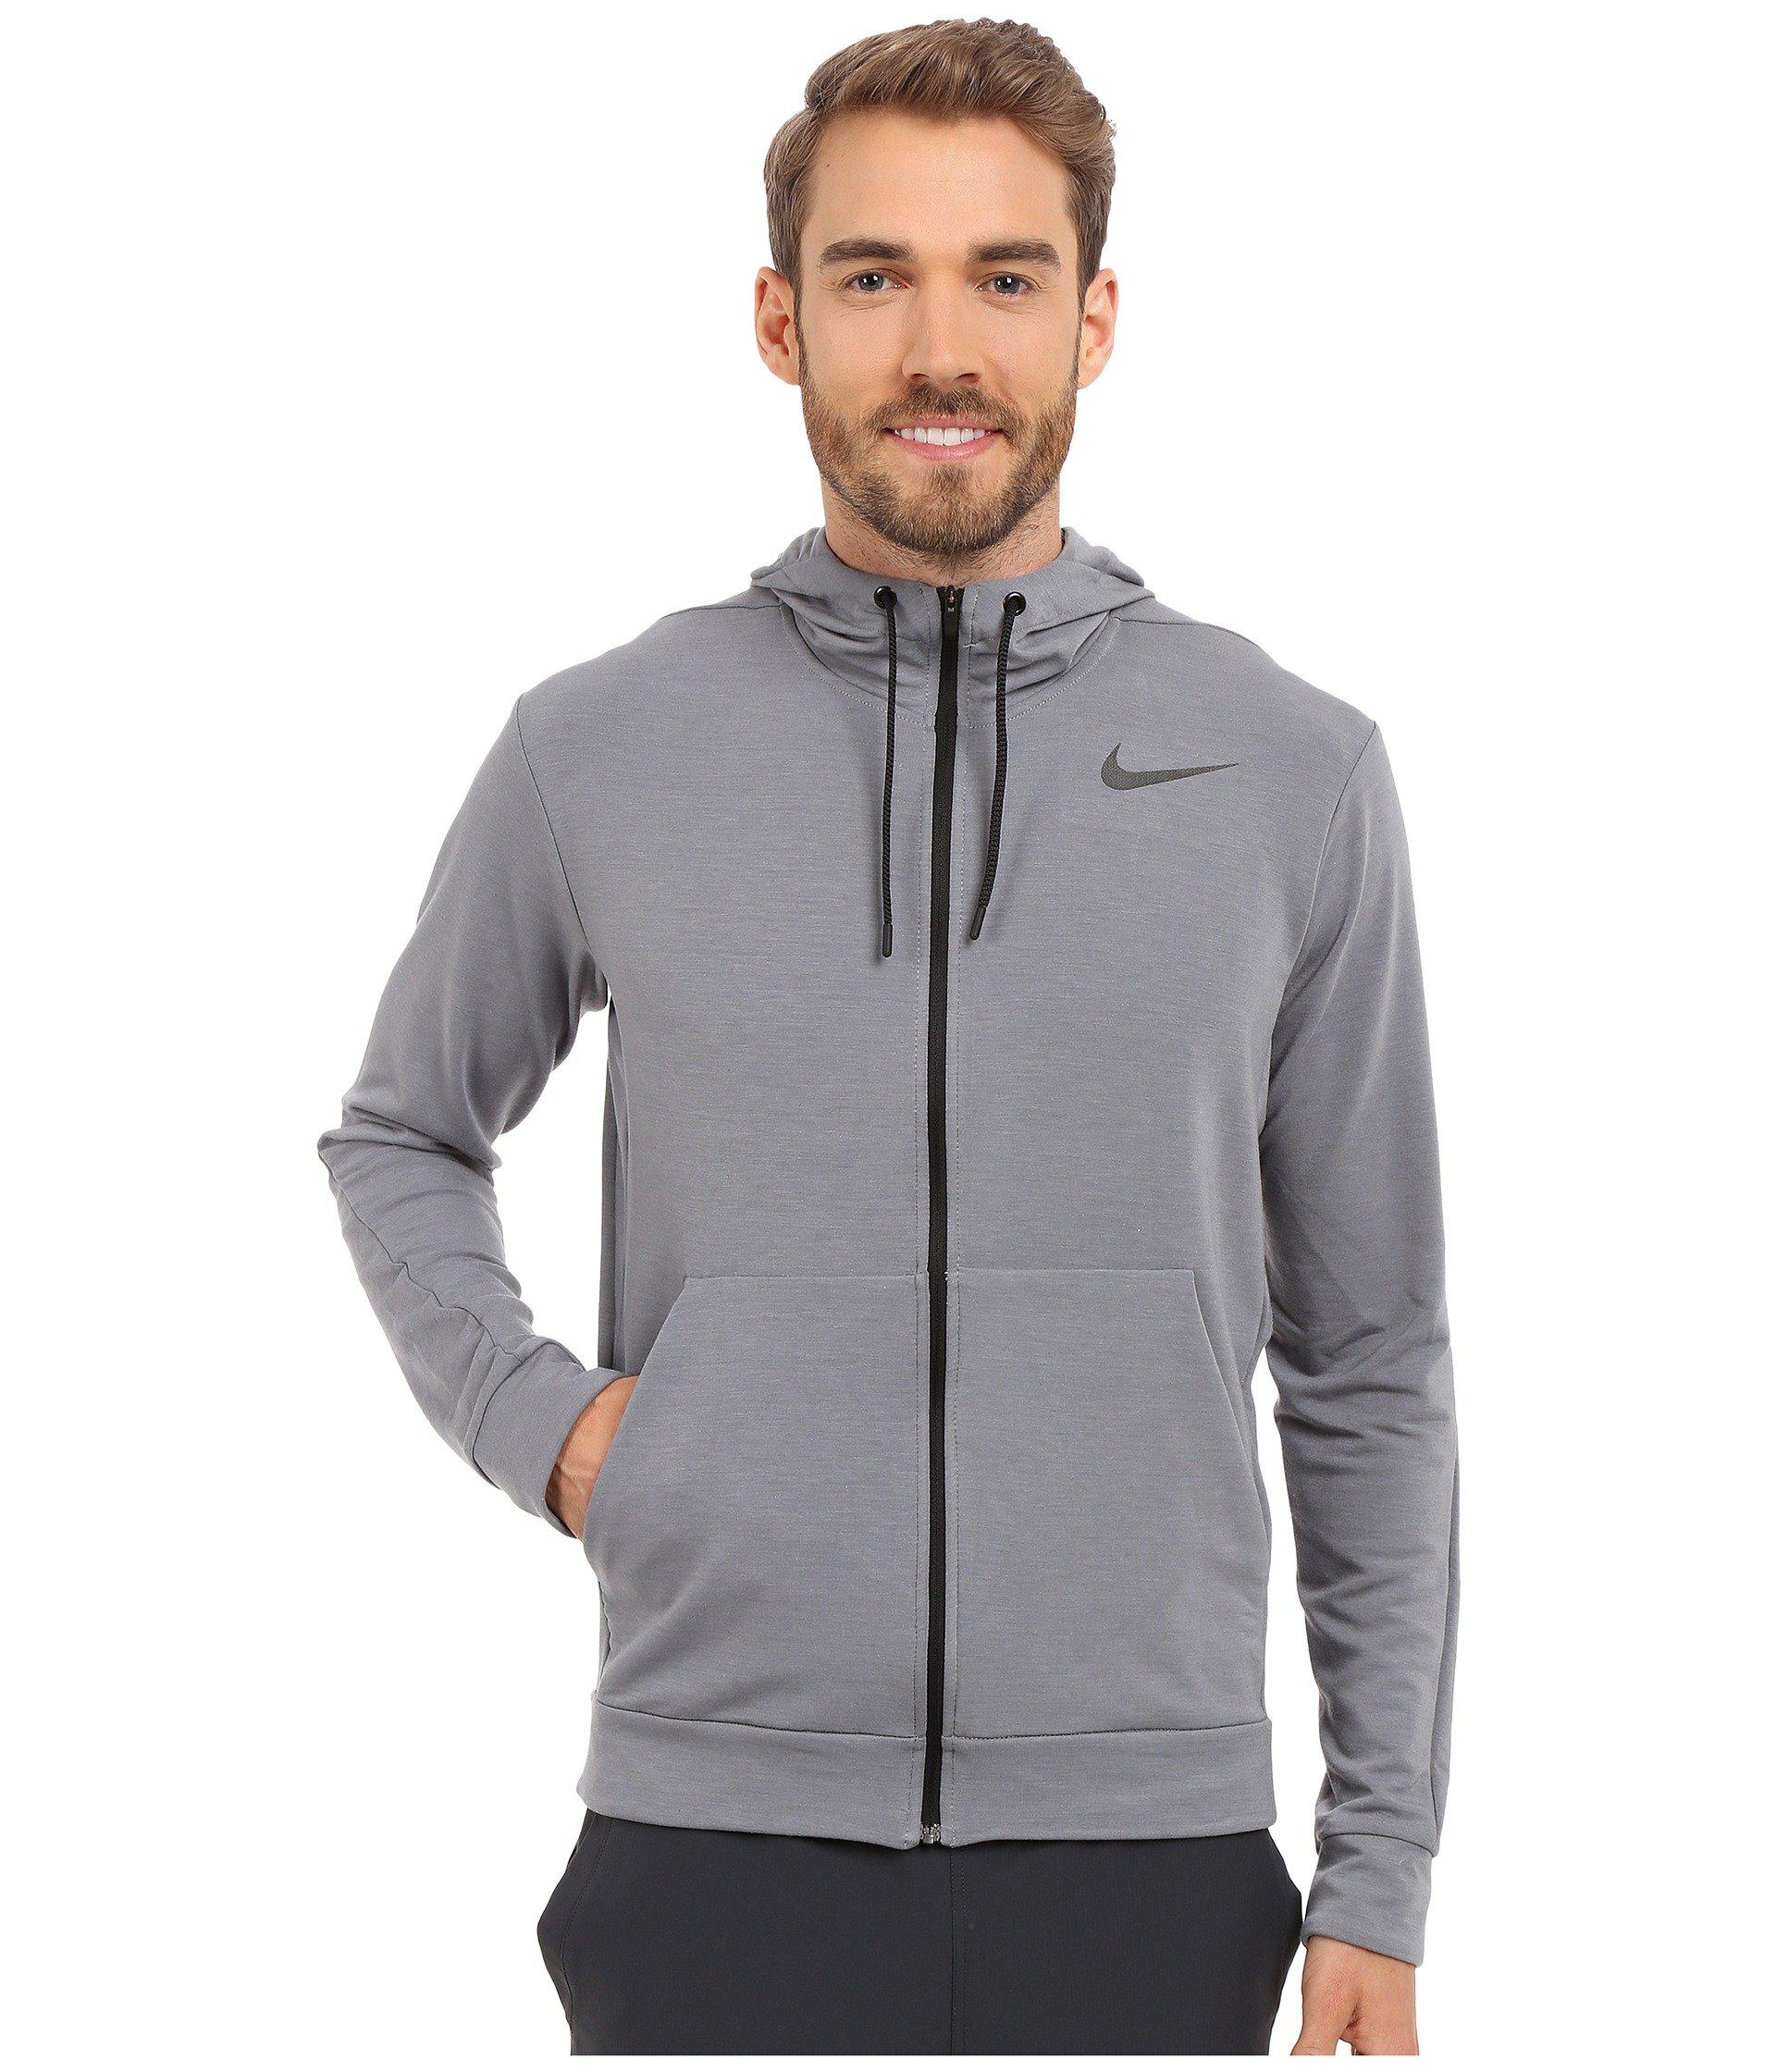 Lyst - Nike Dri-fittm Fleece Full-zip Training Hoodie in Gray for Men 3e3021bca